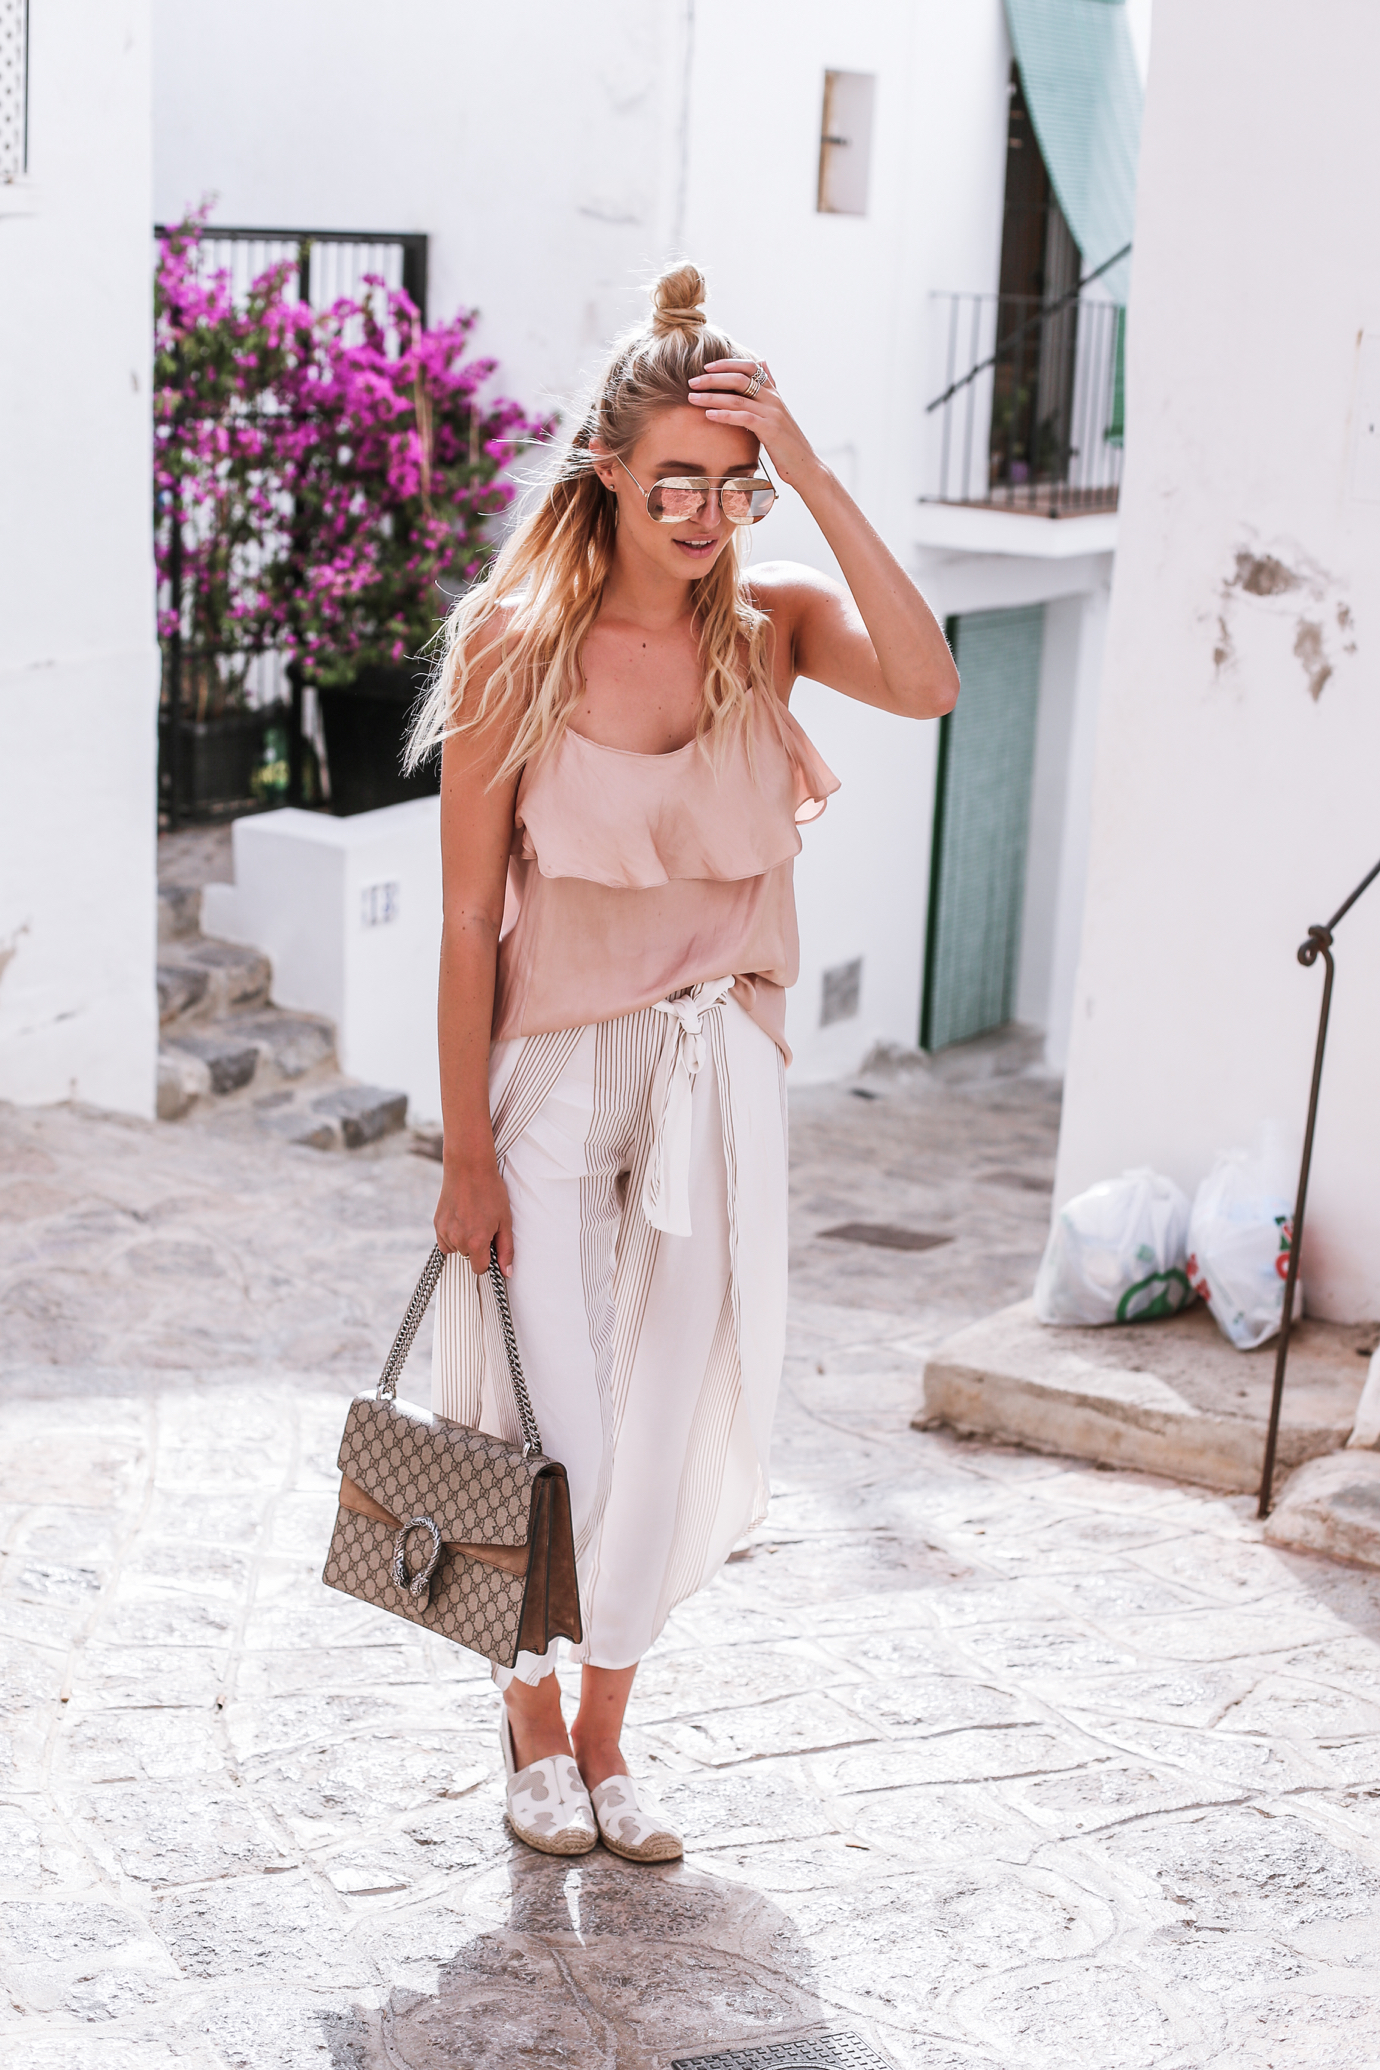 Loose trousers should be in everyone's summer wardrobe; they are perfect to travel in, and, not only do they look good, but they are super comfy! We love these striped ones modelled by Leonie Sophie. She chooses to pair hers with a pastel pink top. Trousers: Shopbop, Top: Zara